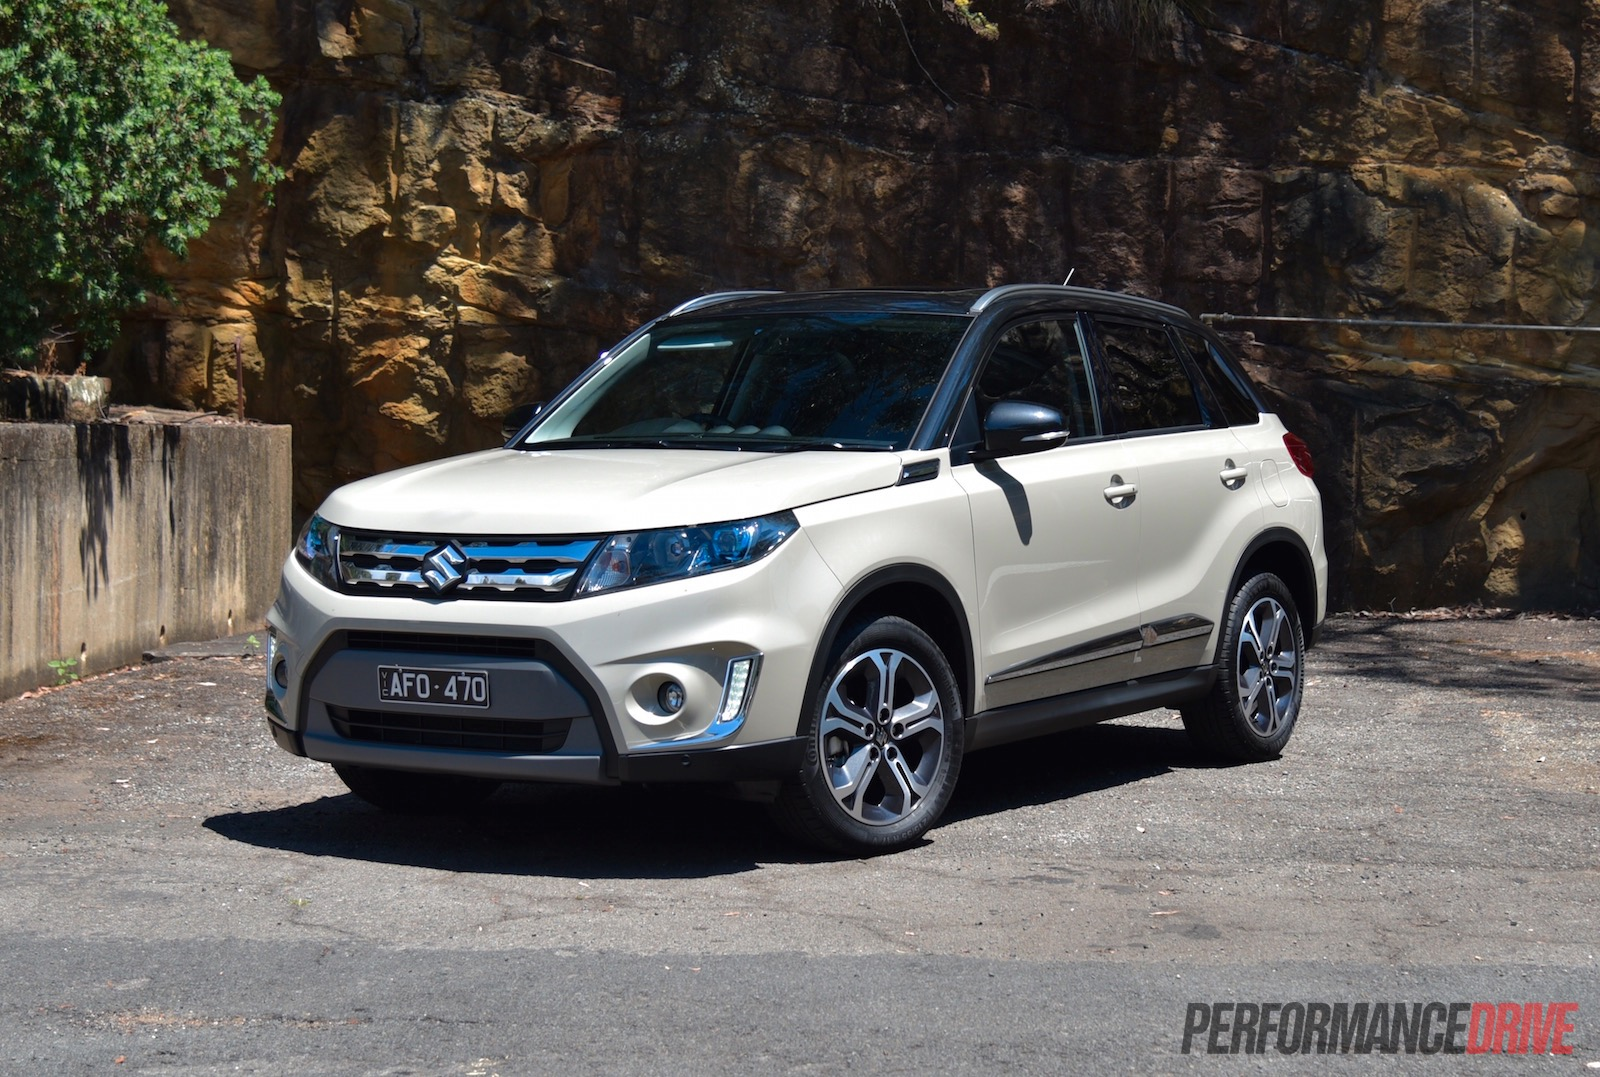 2016 suzuki vitara rt x review  video  performancedrive manual grand vitara 2009 manual grand vitara sz